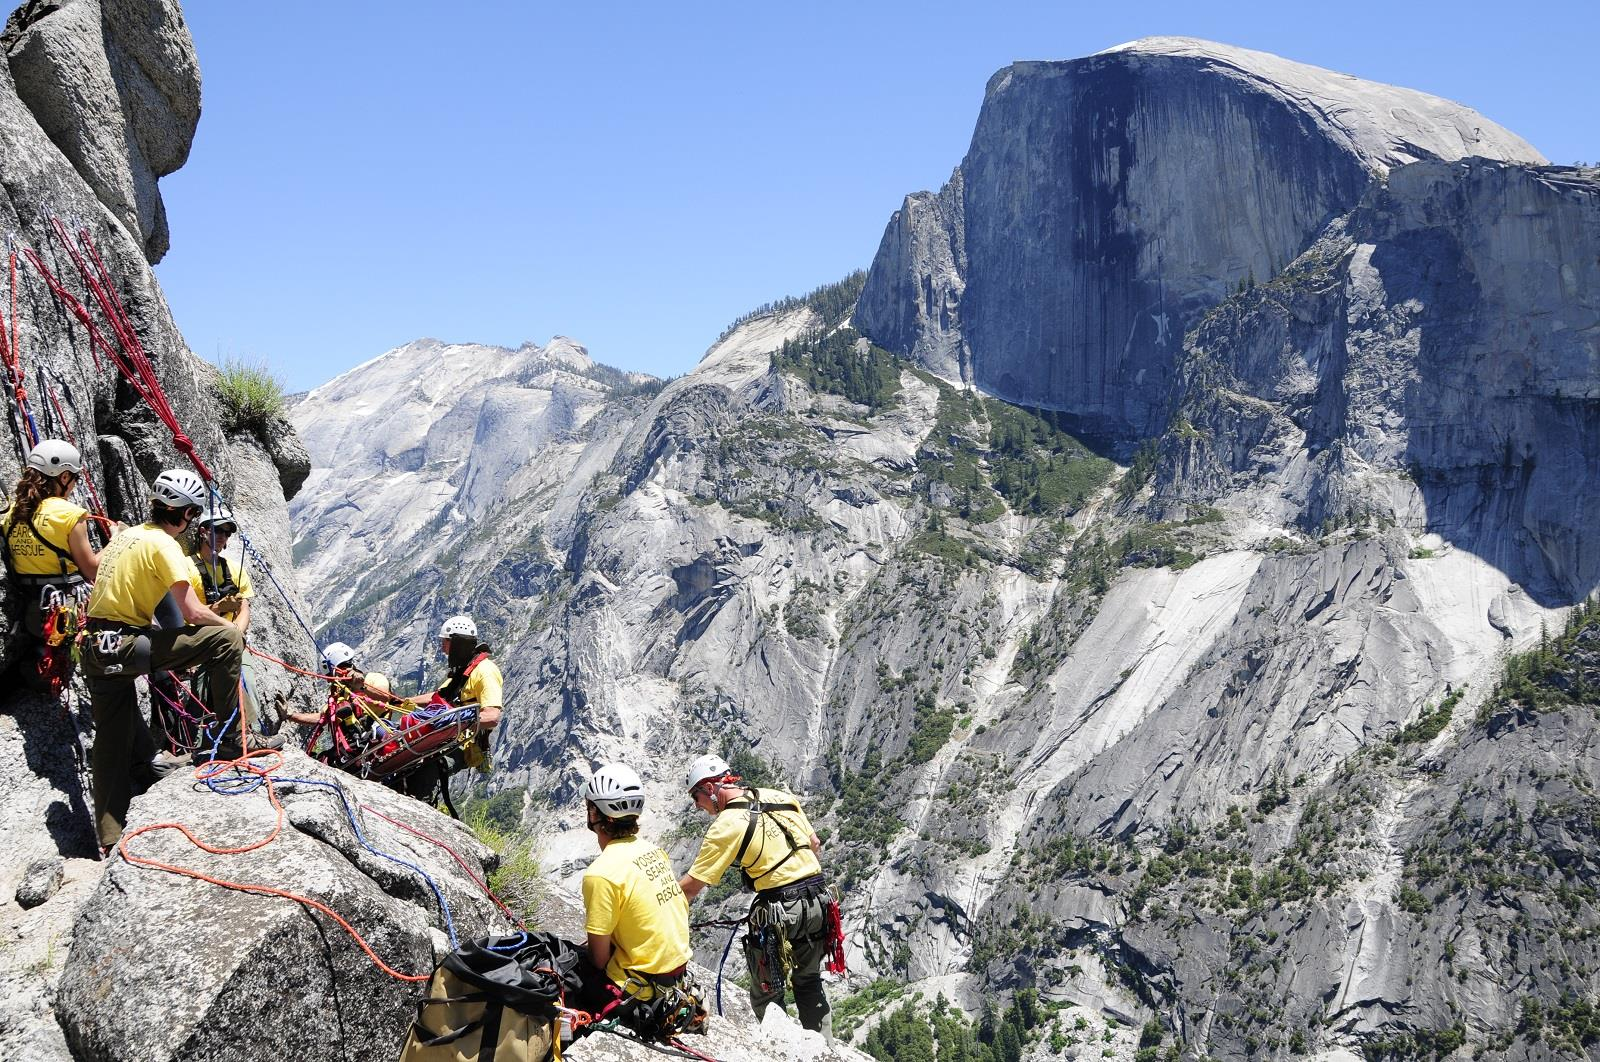 Image: A Yosemite National Park Search and Rescue team conducts a technical rope rescue training.